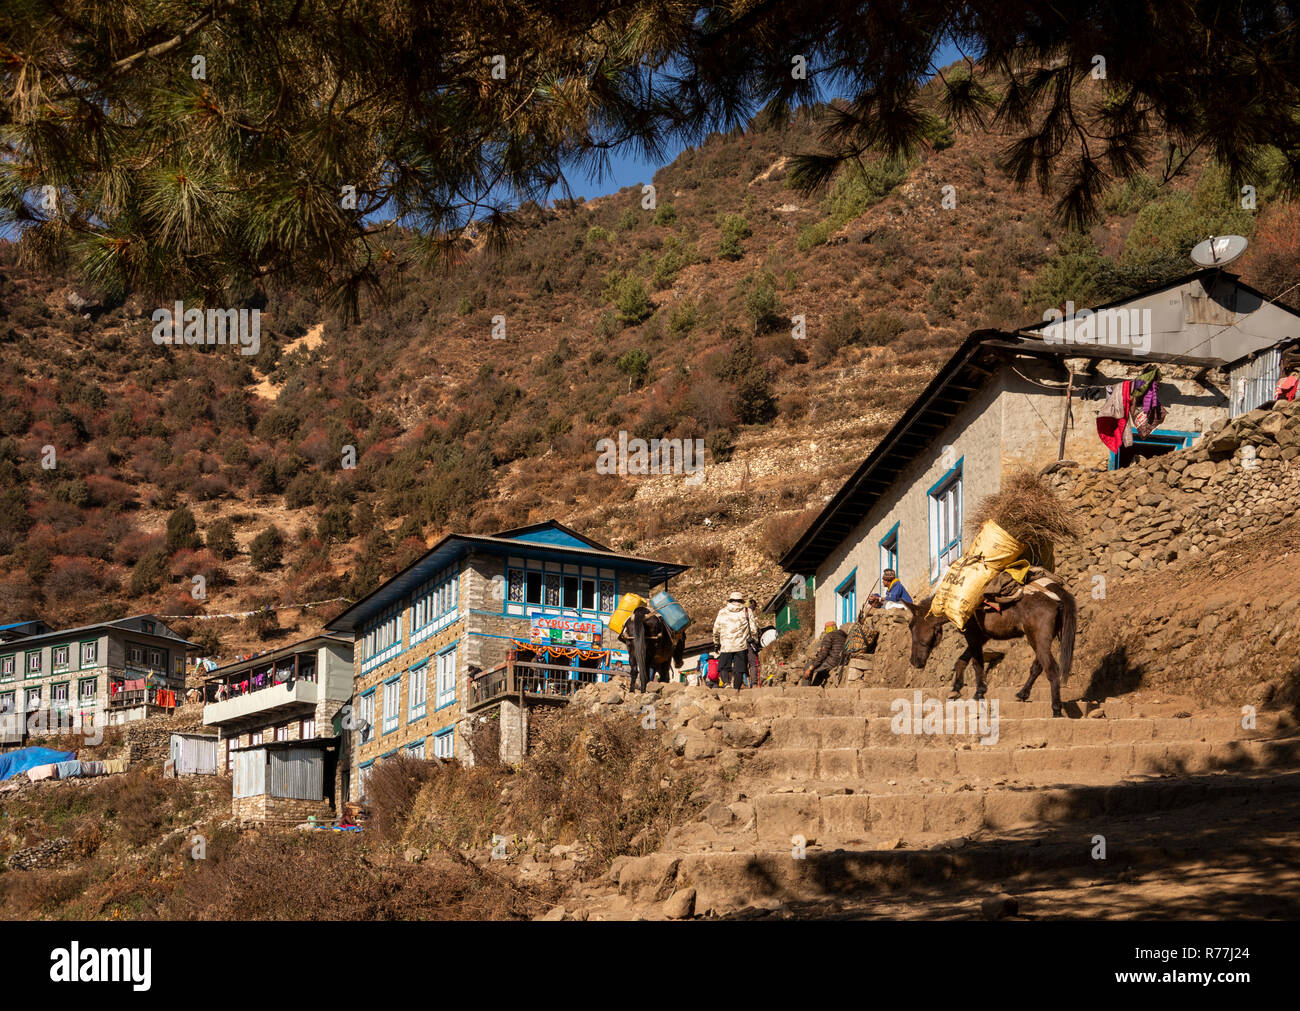 Nepal, Namche Bazar, rocky steps, Cyrus Café and first buildings at southern edge of Namche Baxaar - Stock Image